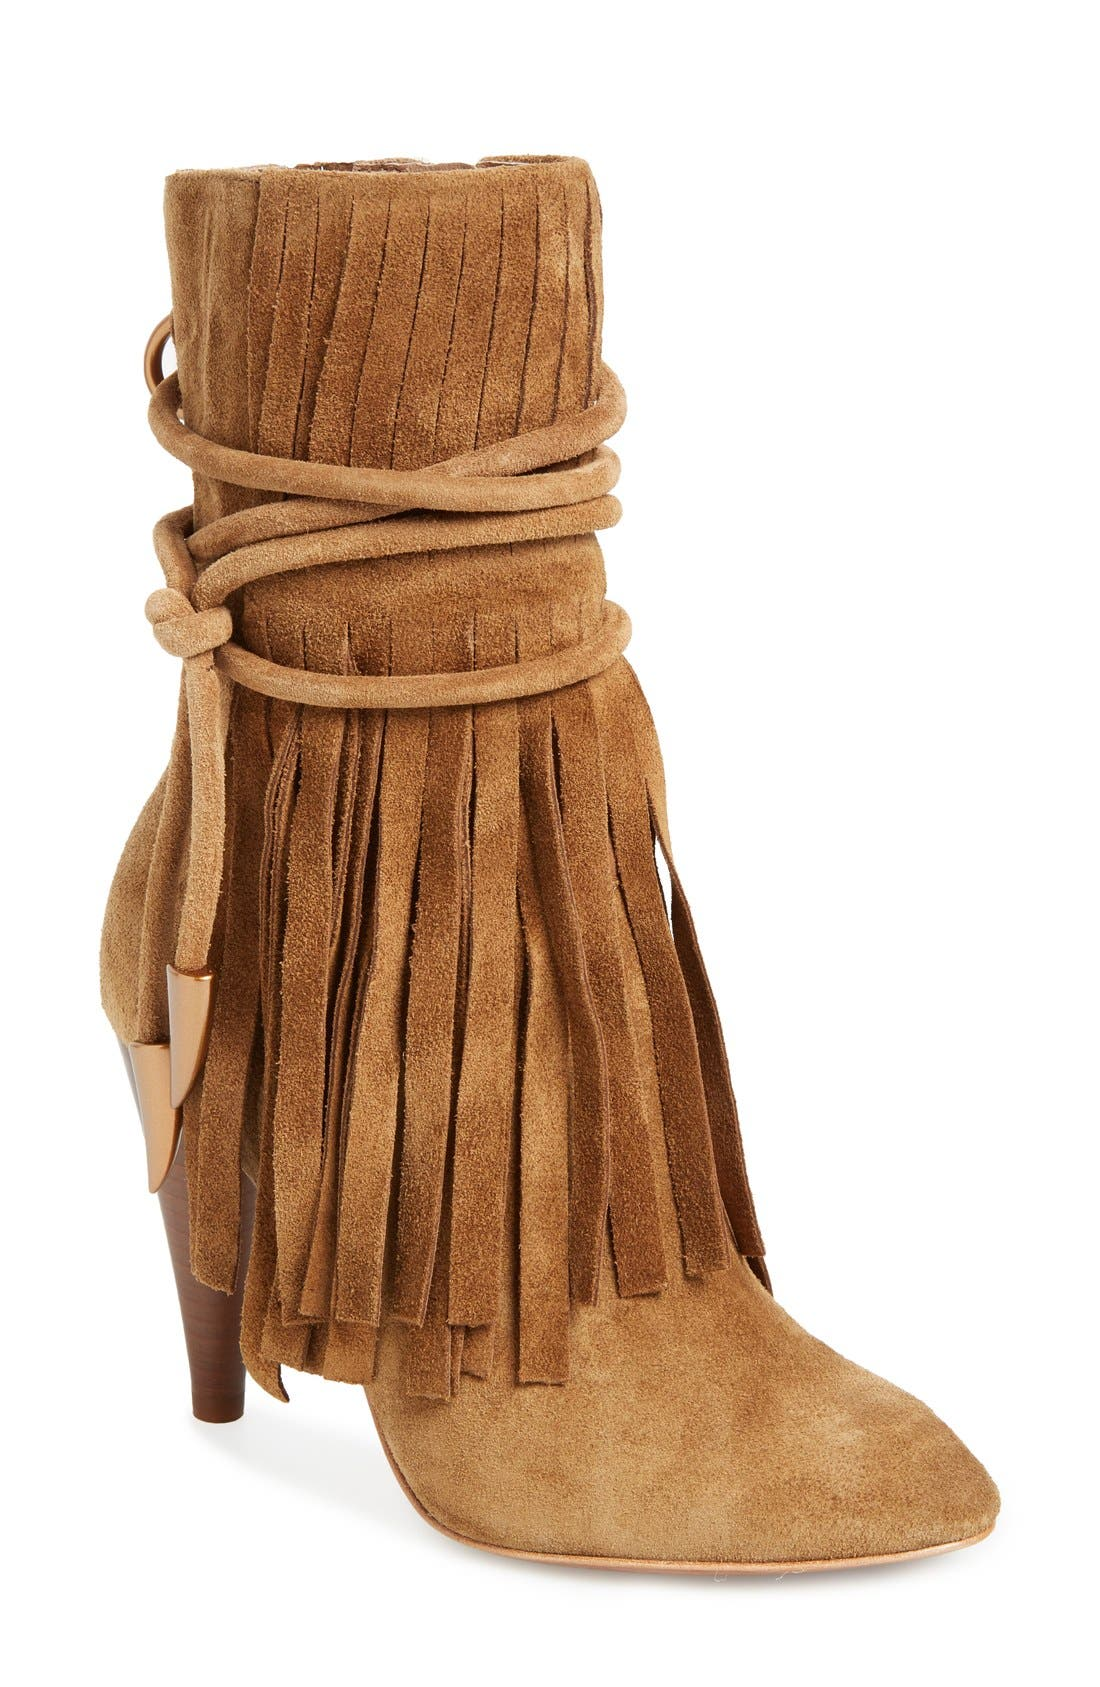 Alternate Image 1 Selected - Ash 'Bird' Fringe Boot (Women)